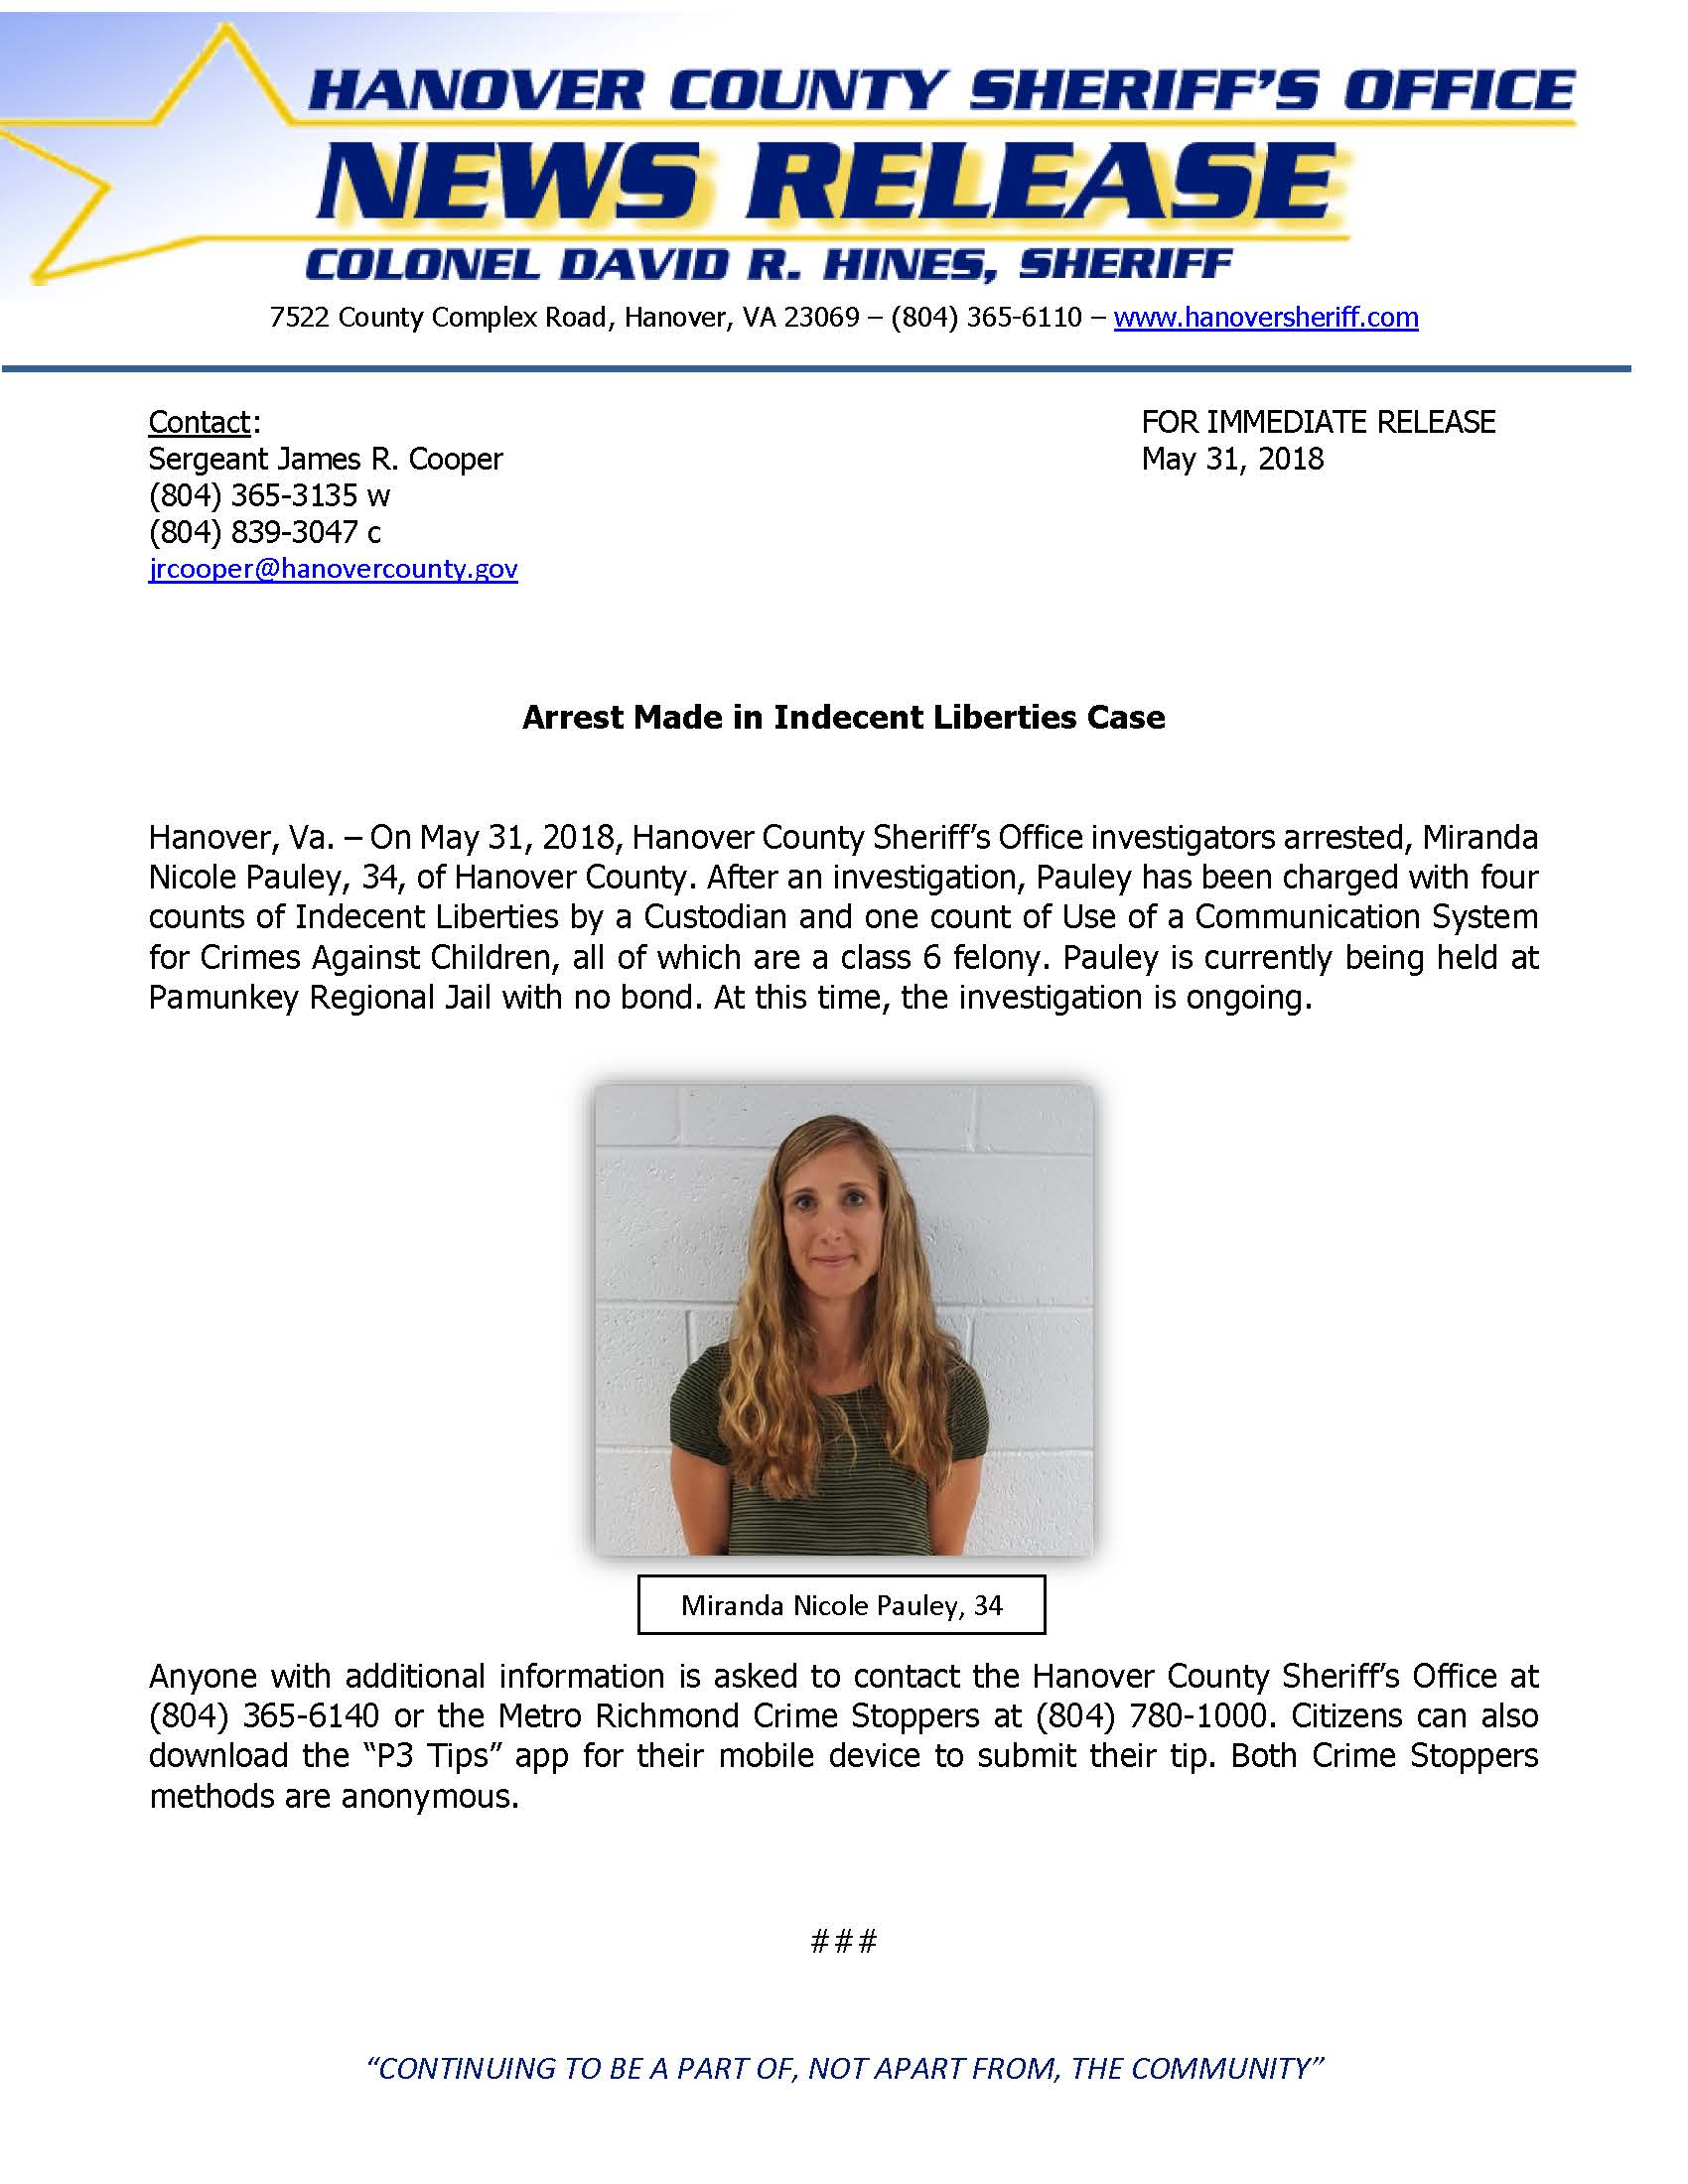 HCSO - Arrest Made in Indecent Liberties Case- May 31, 2018